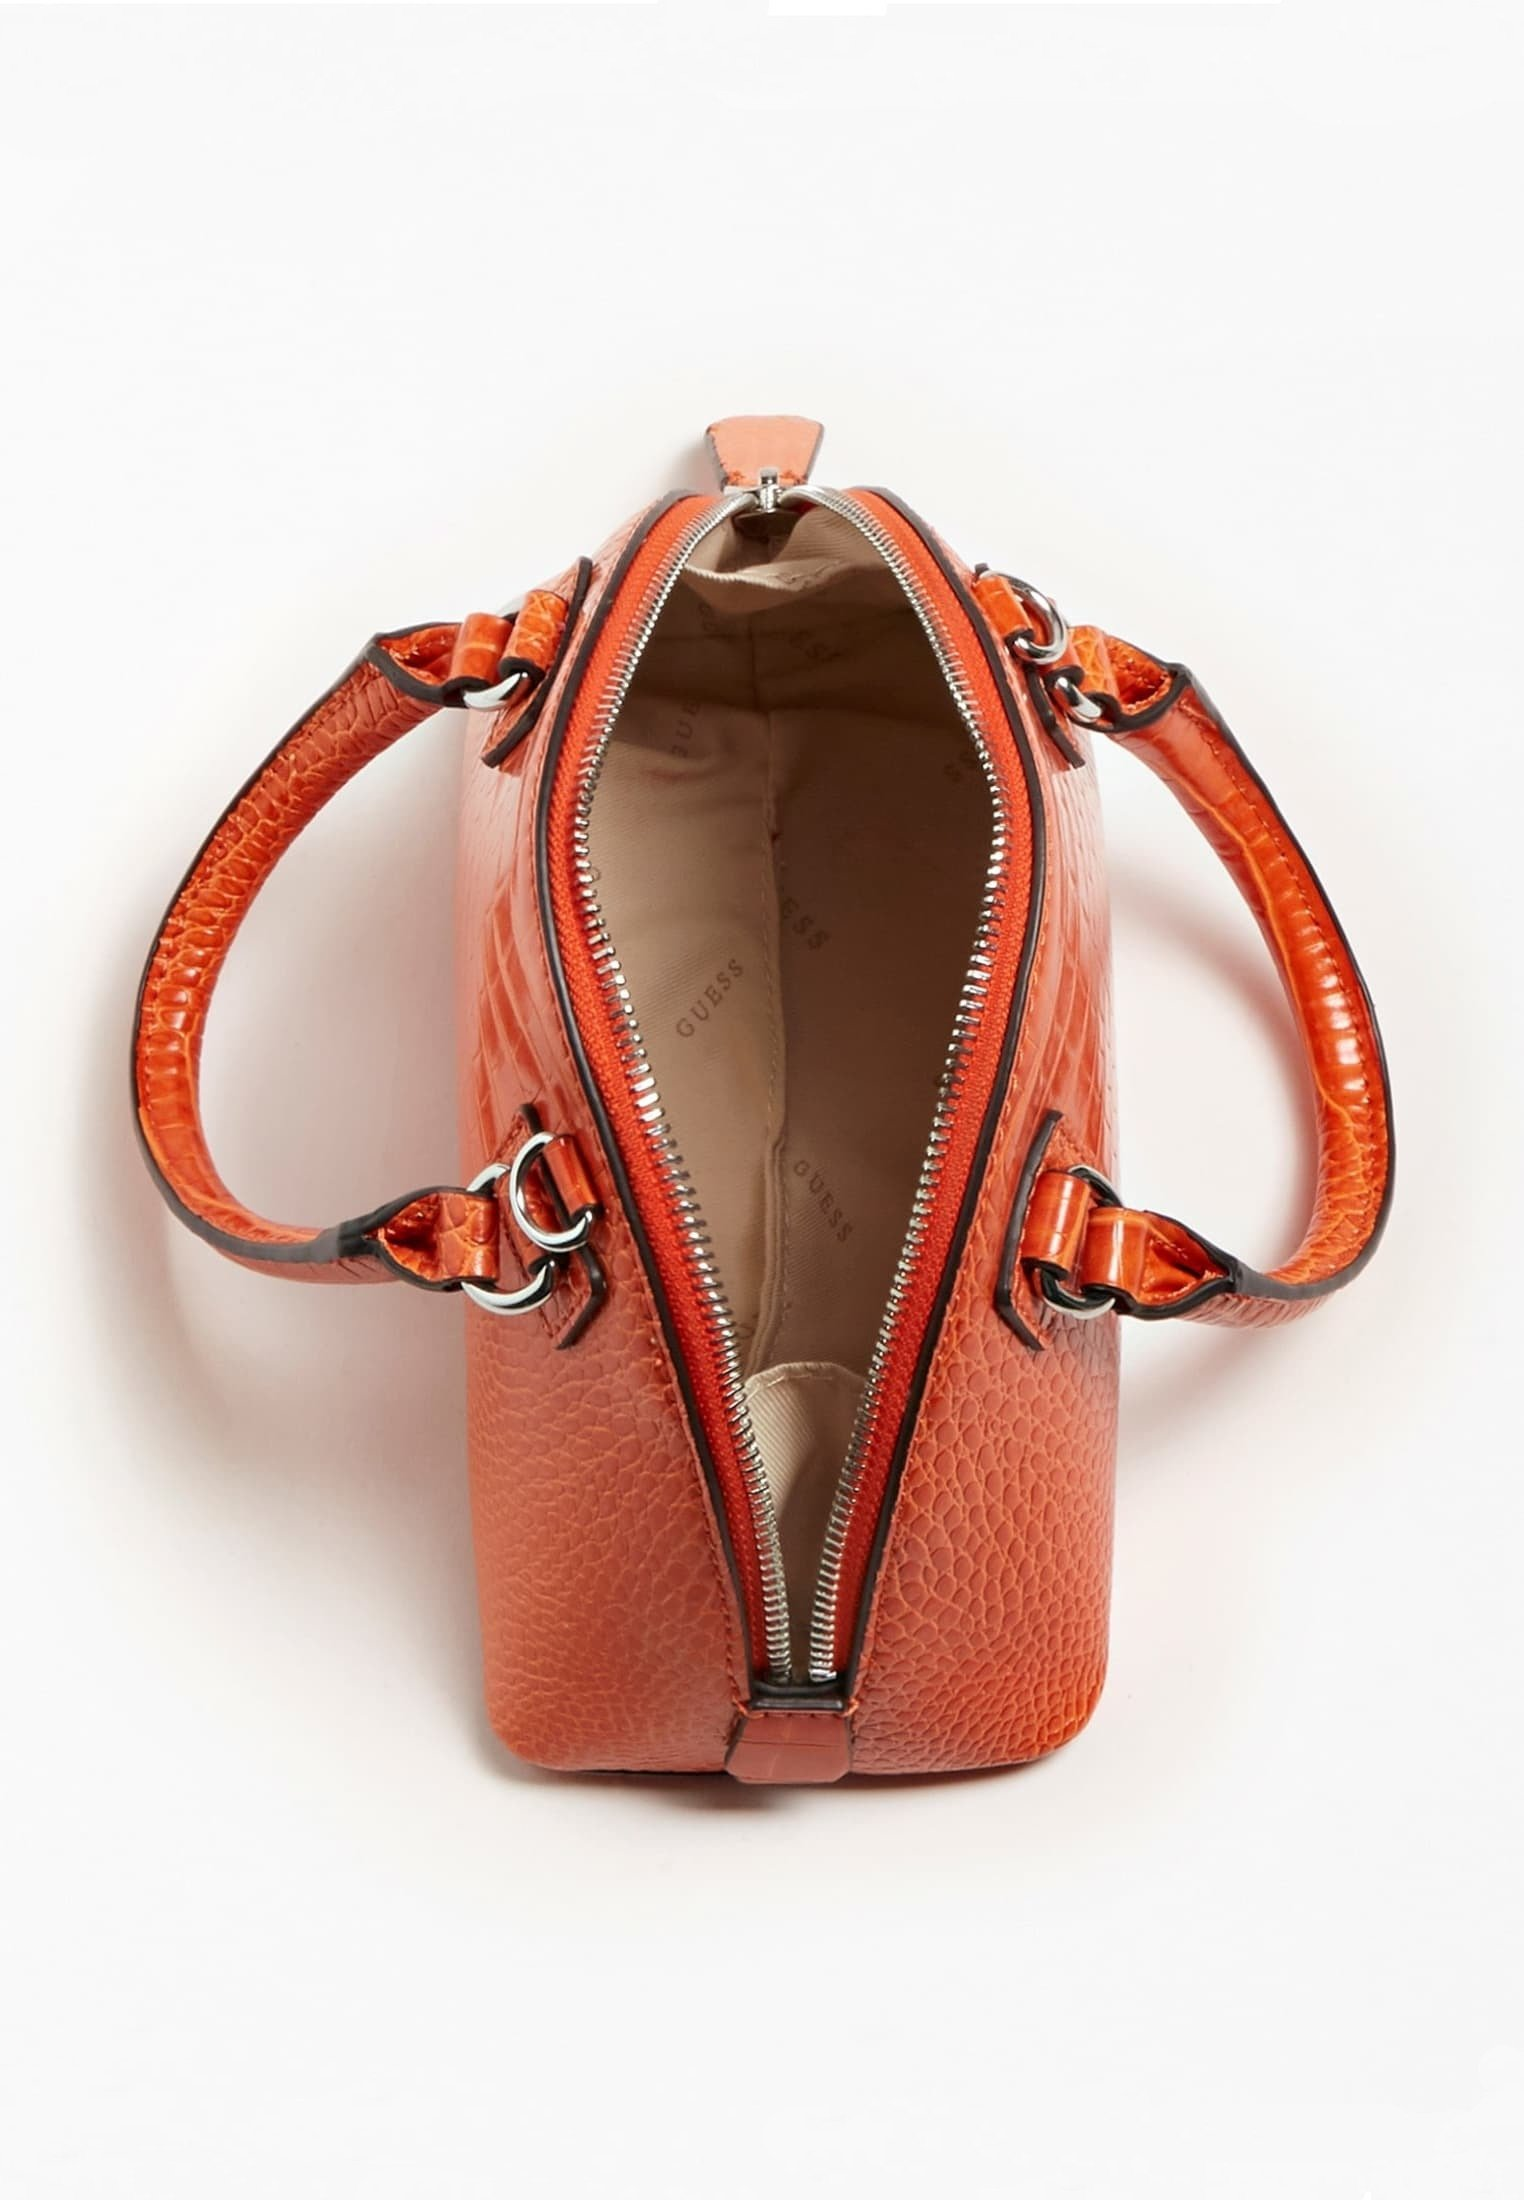 guess handtasche orange weiß